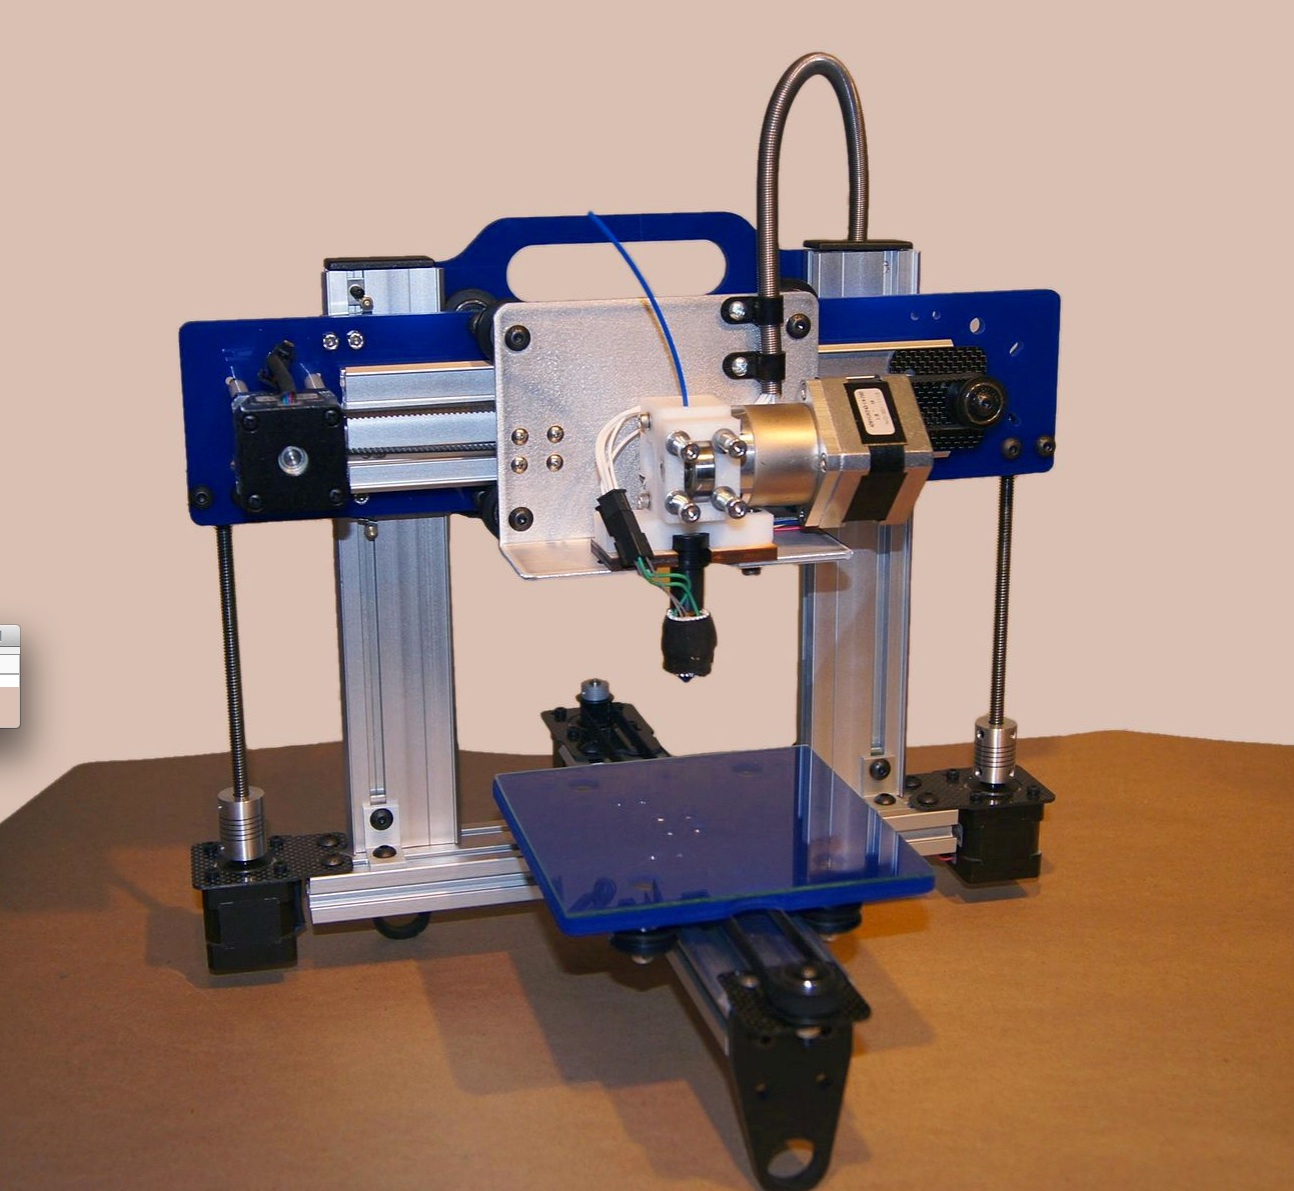 3D Printing Isn't Coming–It's Already Here